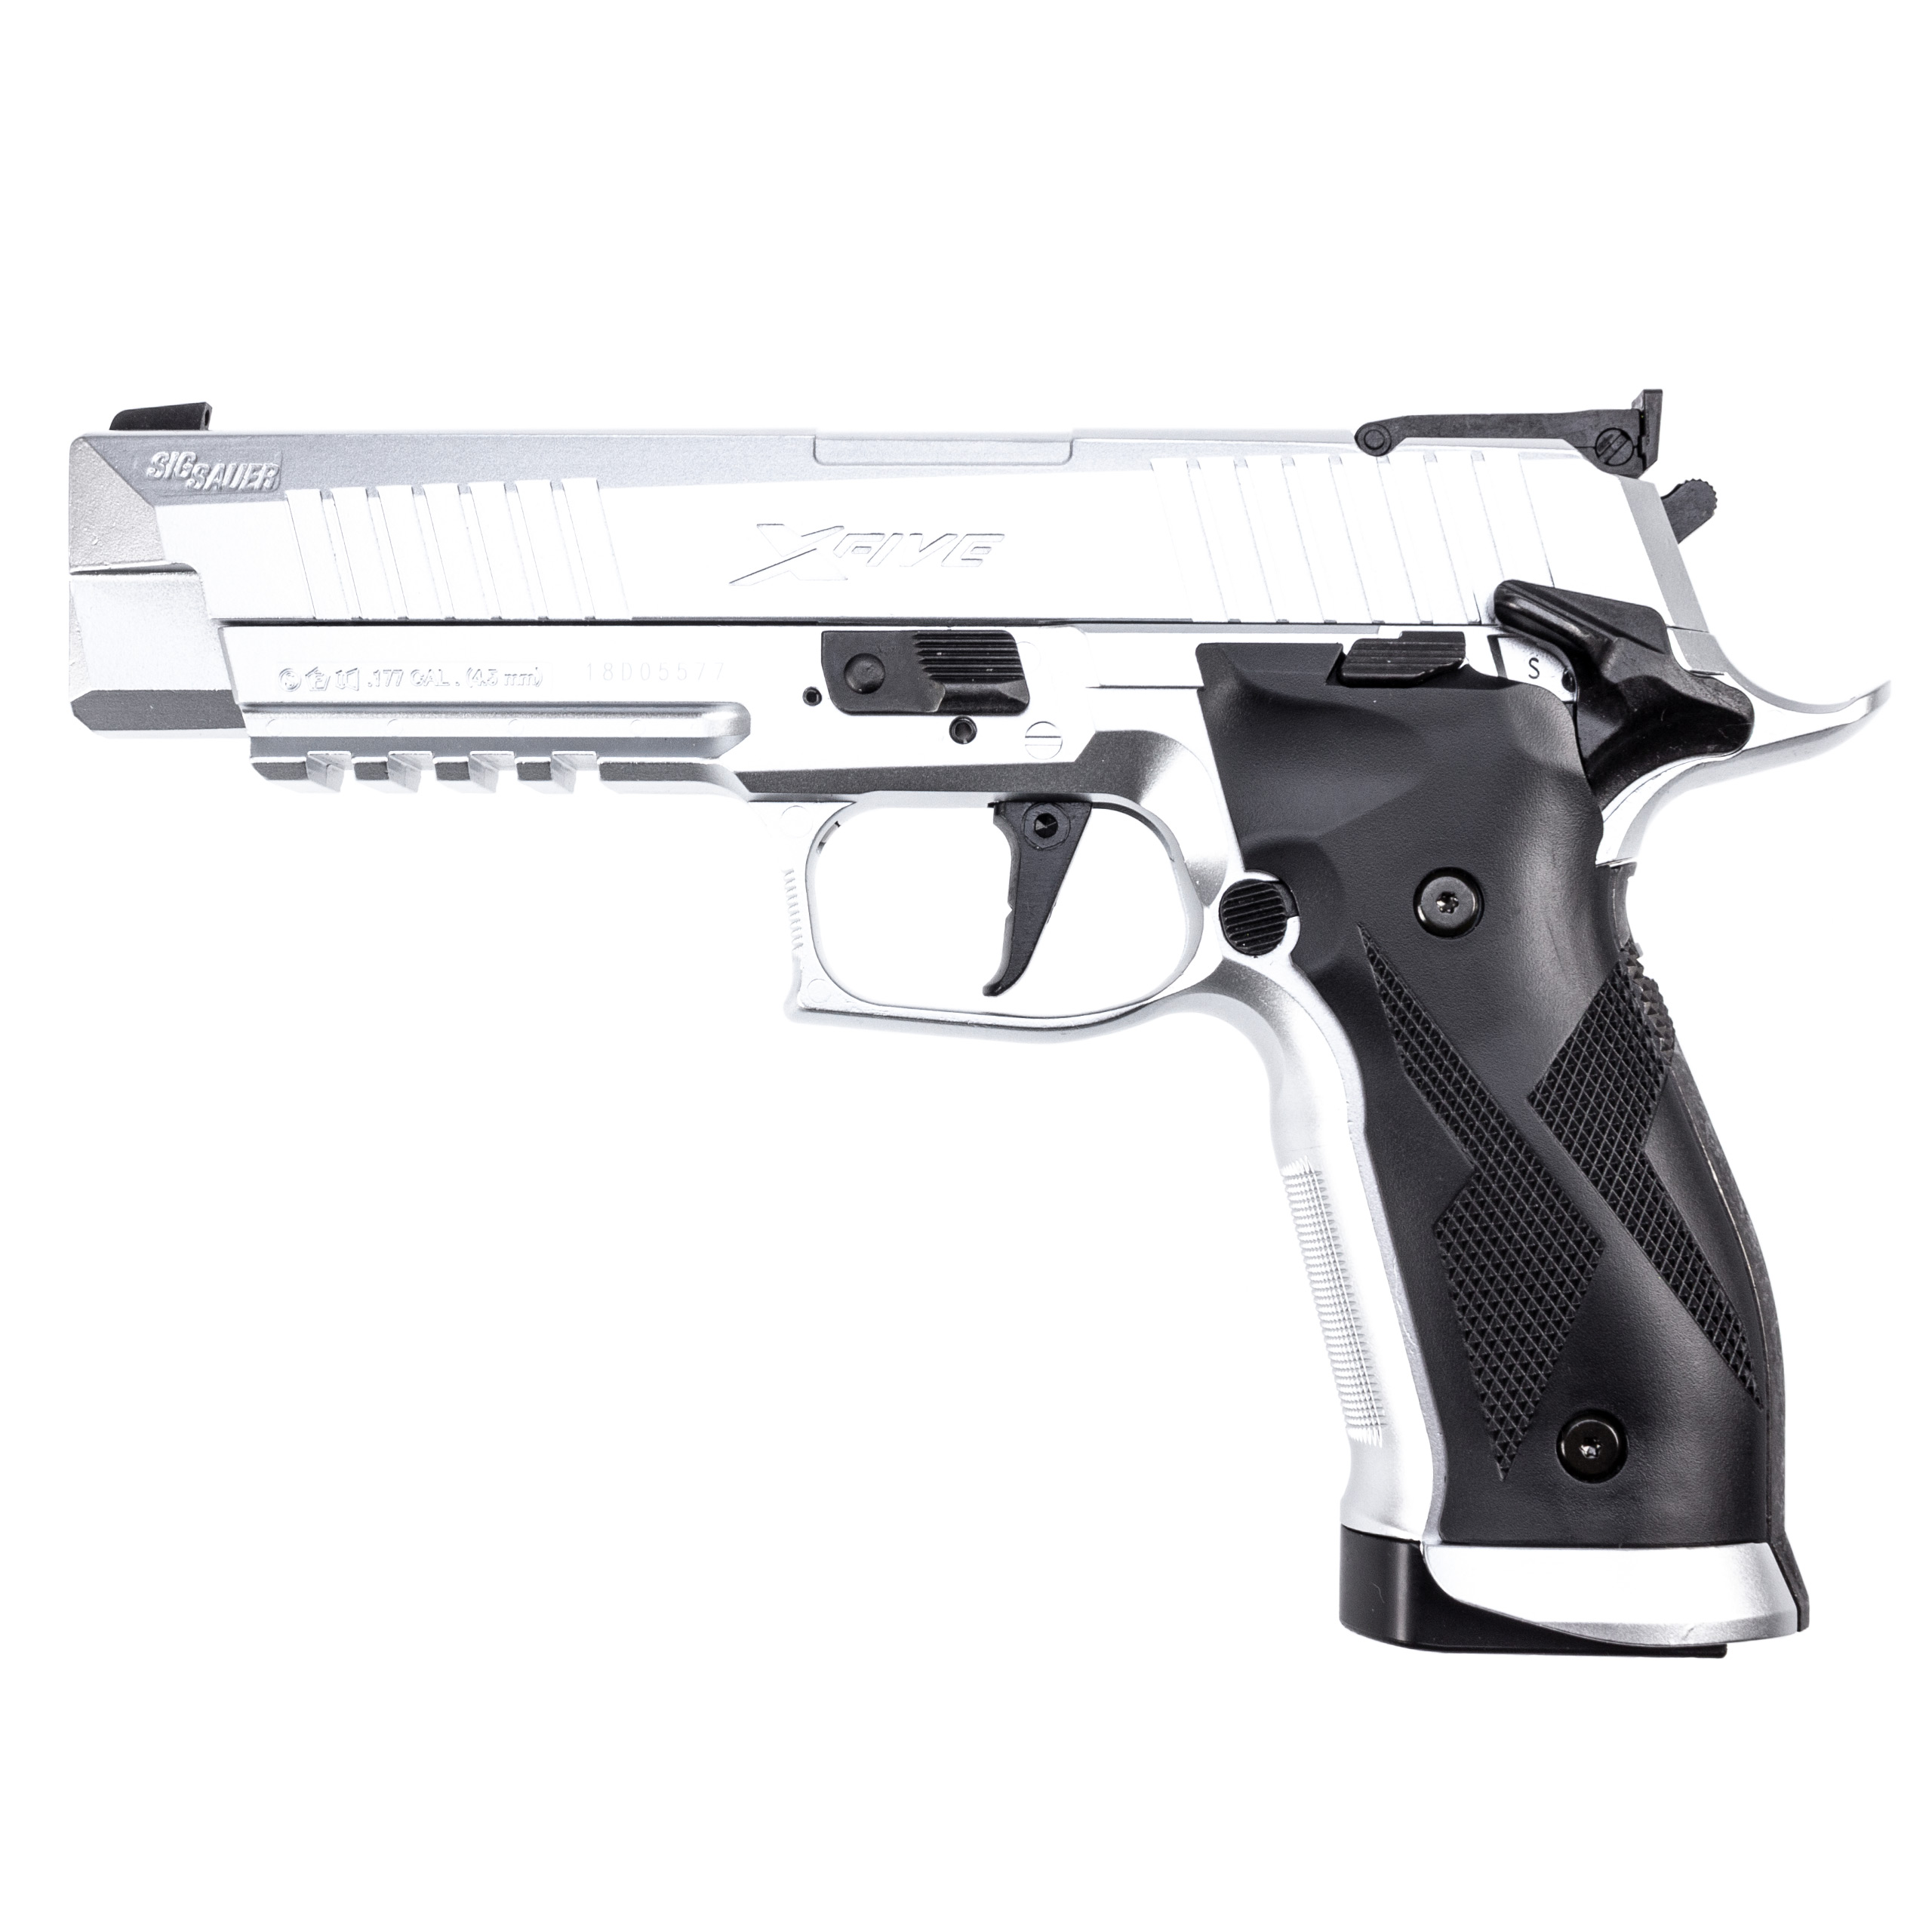 Sig Sauer X-Five CO2-Pistole mit BlowBack 4,5mm - stainless